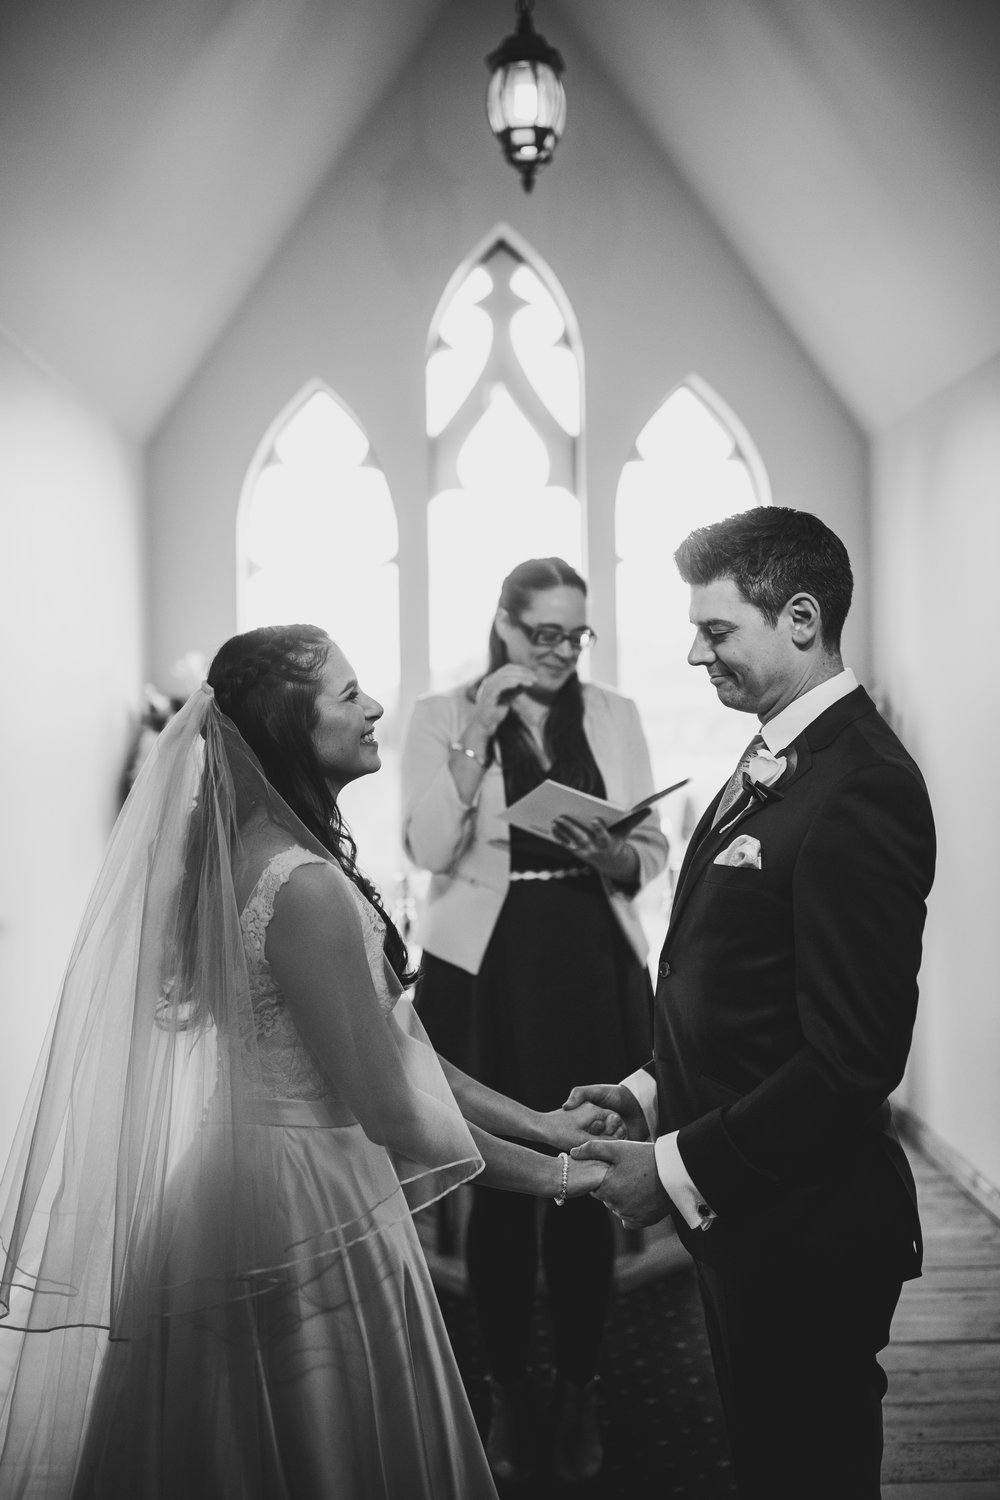 Williams Photography  /  Simply Perfect Weddings